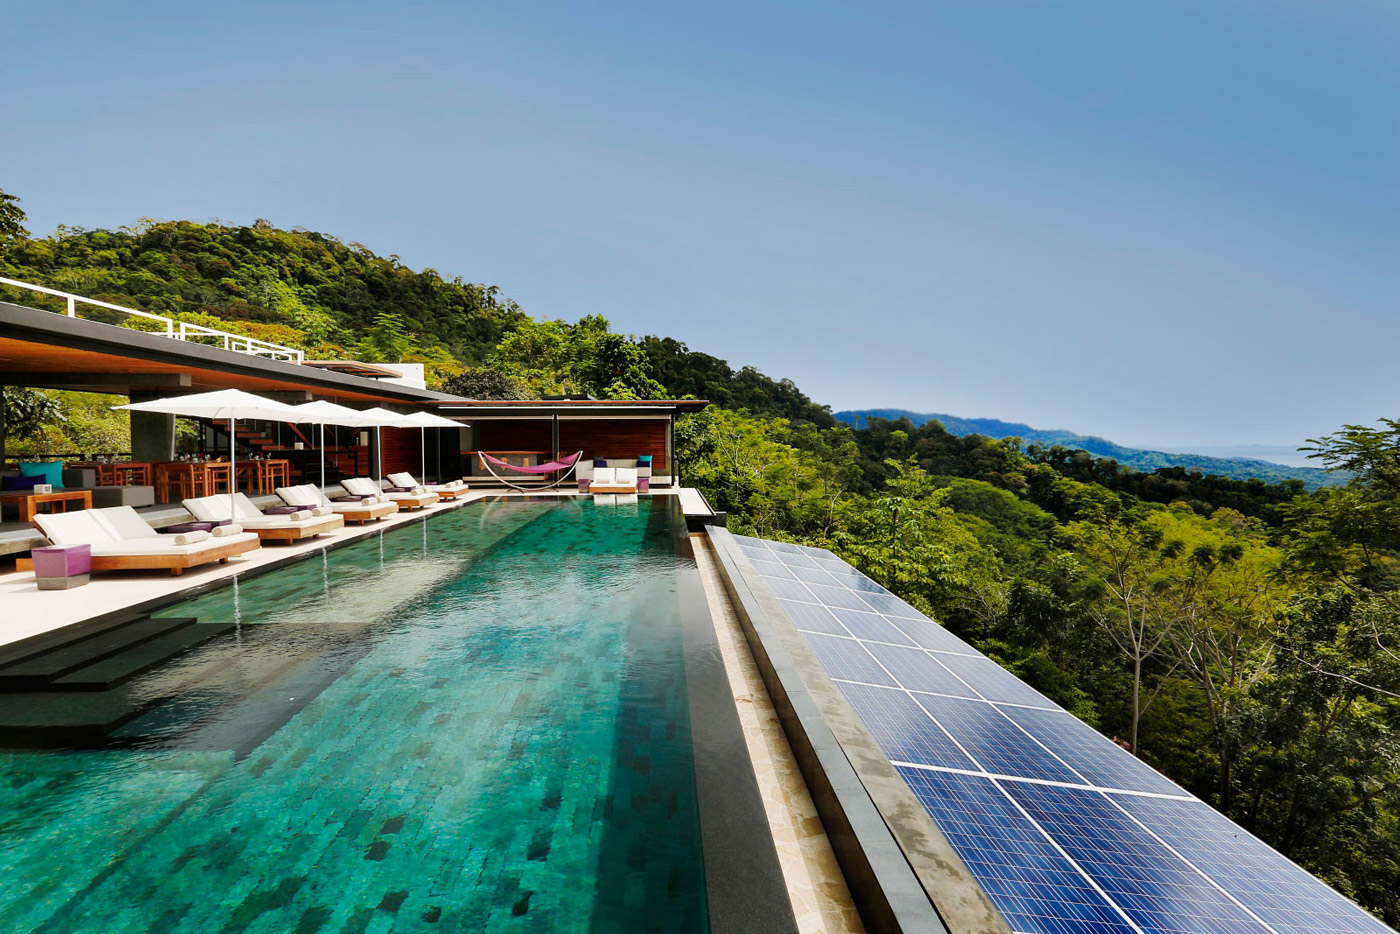 Pool, Solar Panels, Holiday Villas in Costa Rica